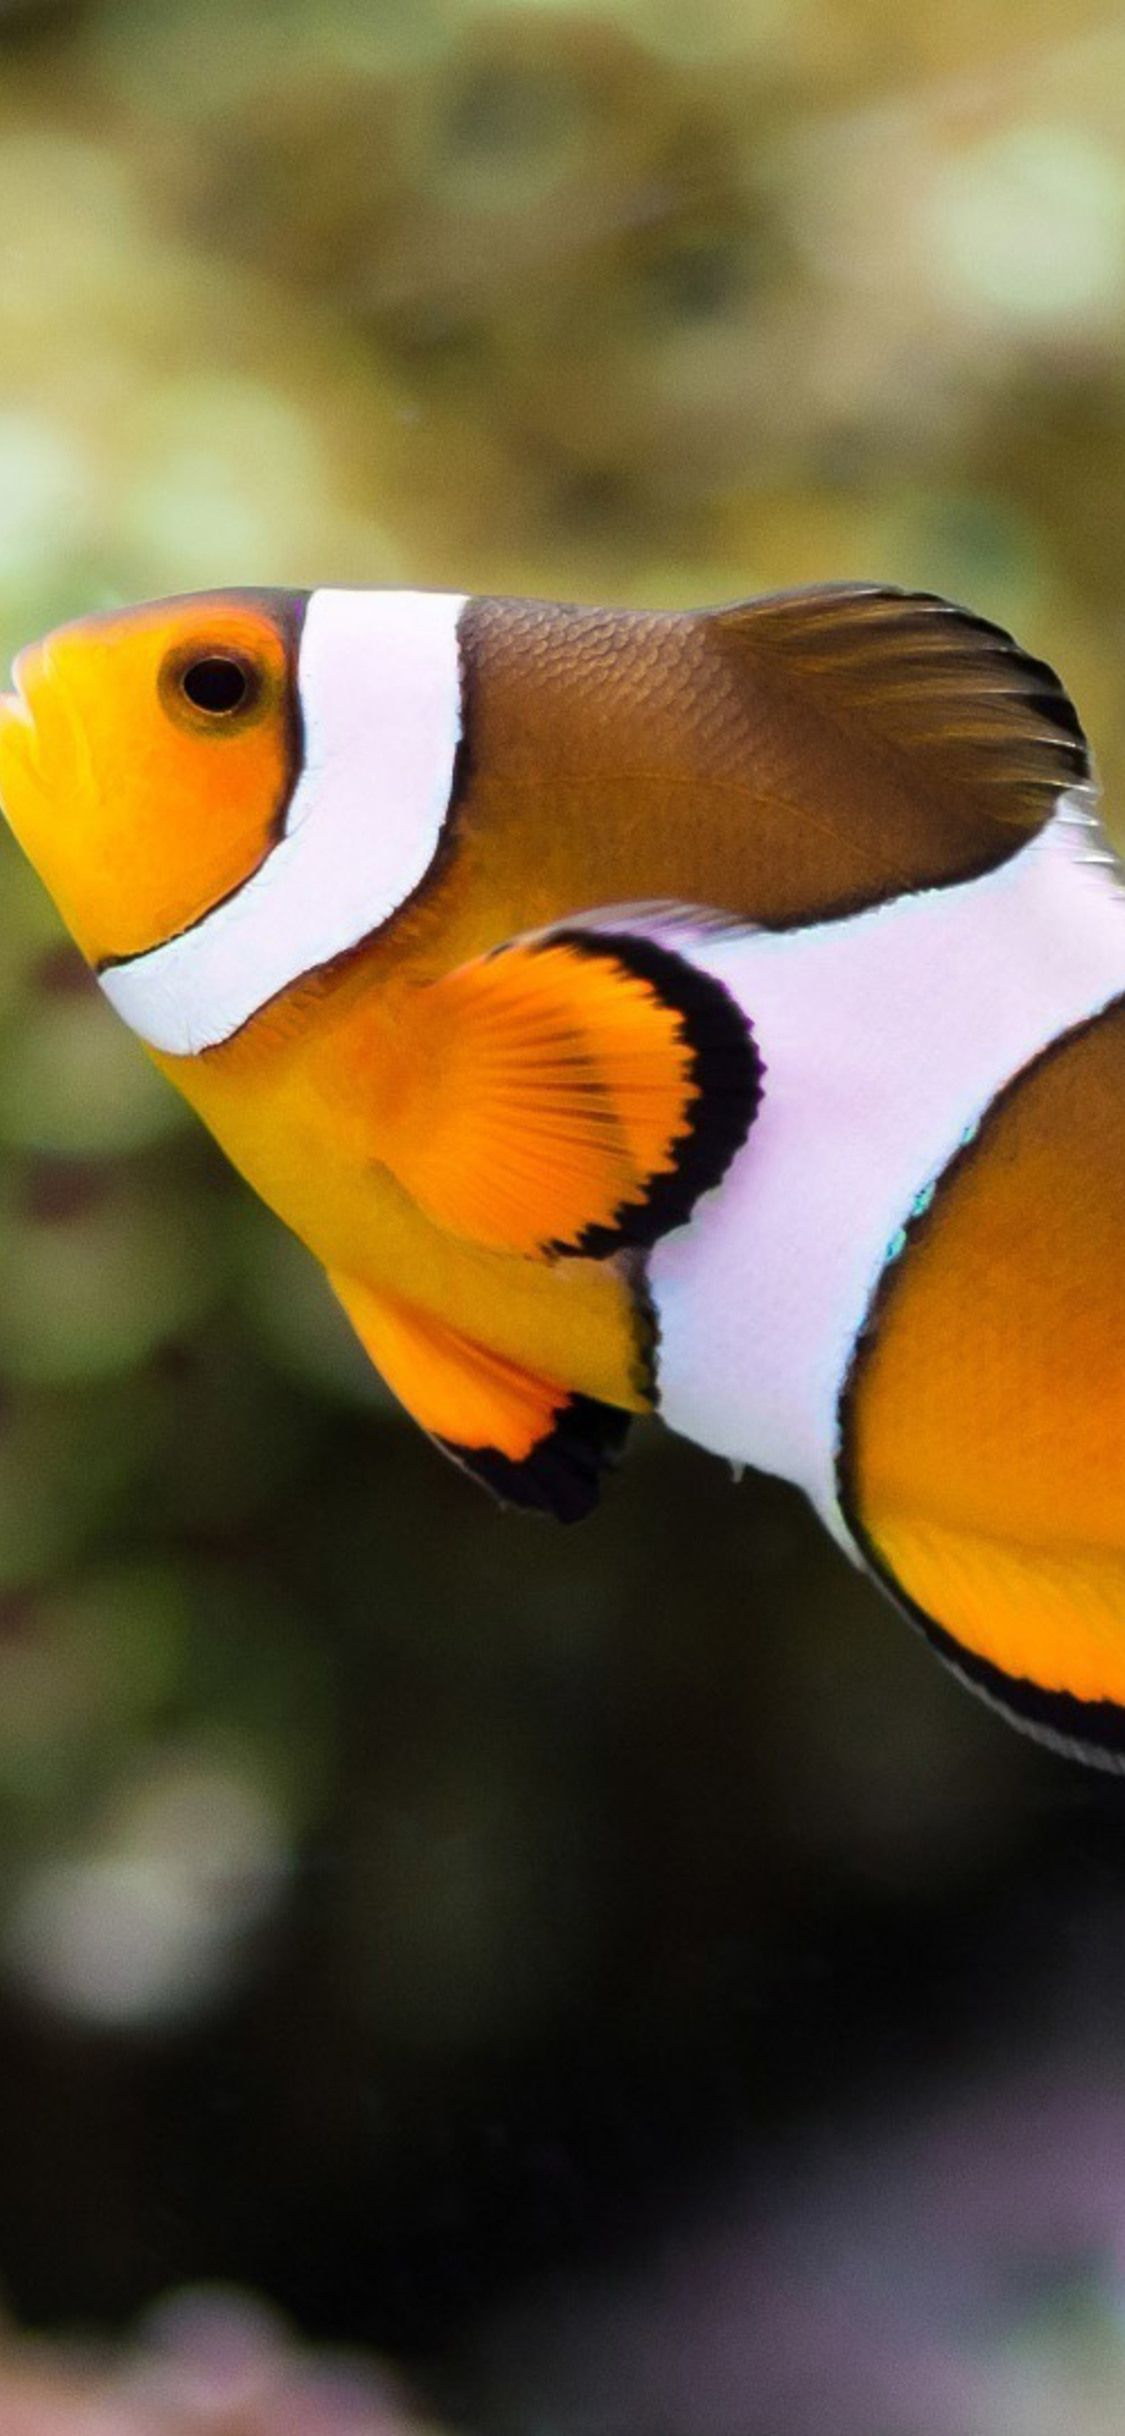 Iphone Clownfish Wallpaper 4k Mywallpapers Site Iphone Animal Wallpaper Iphone Wallpaper